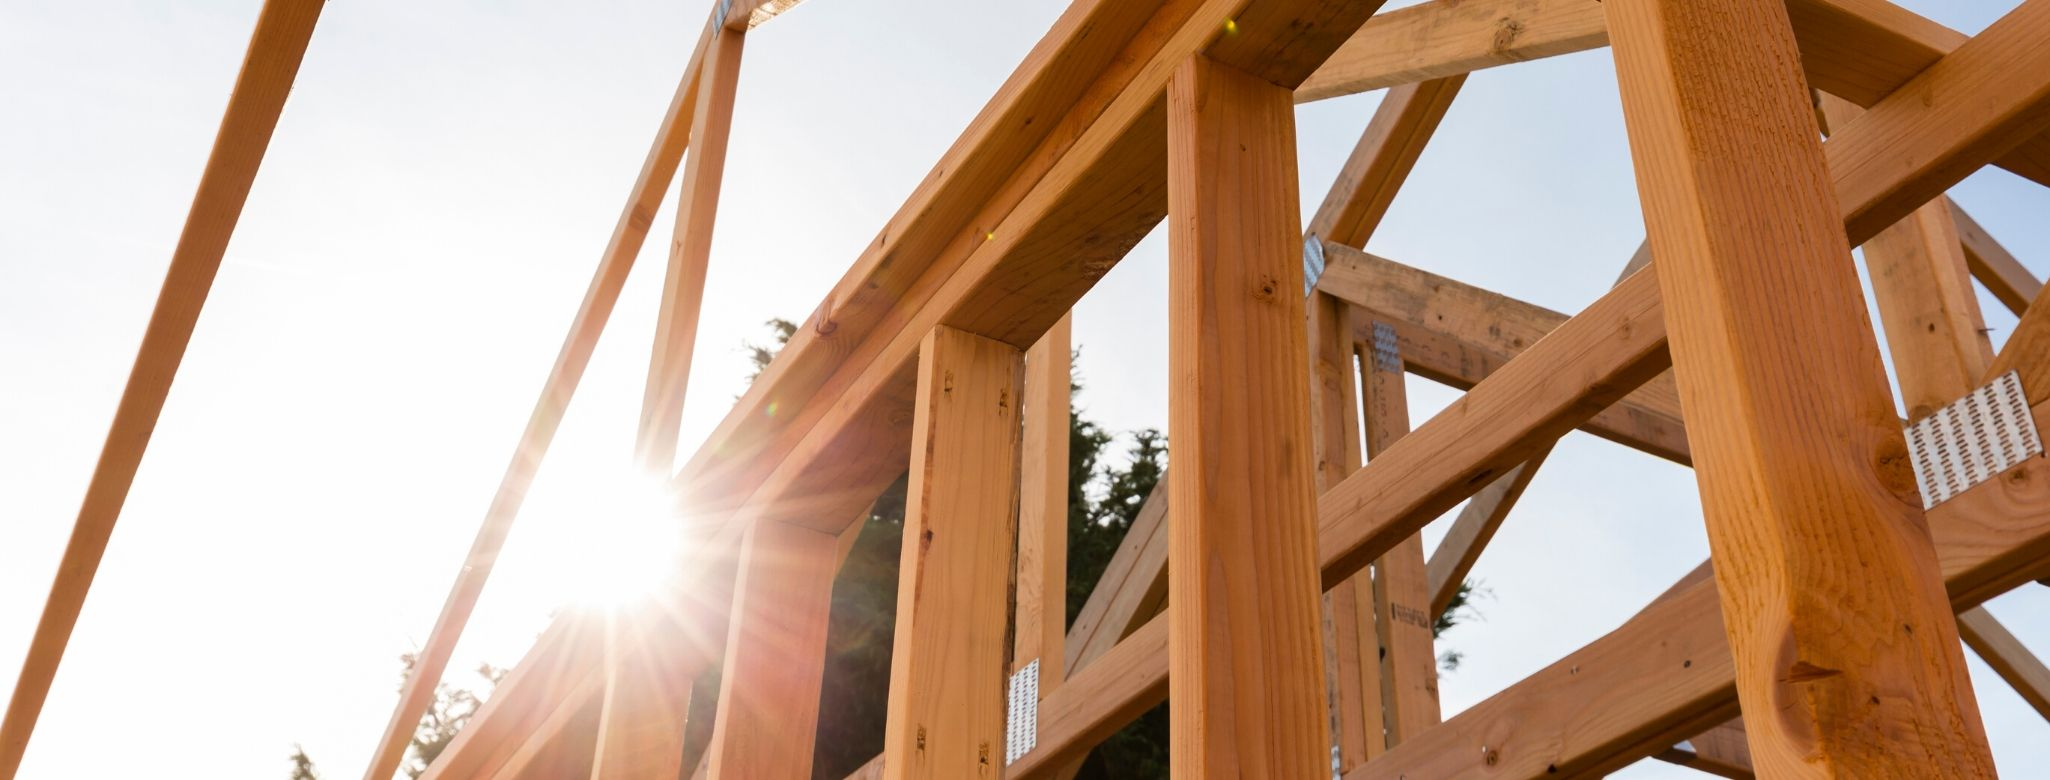 New Construction Sales are Sizzling this Summer – Don't Get Burned Buying without a Realtor.